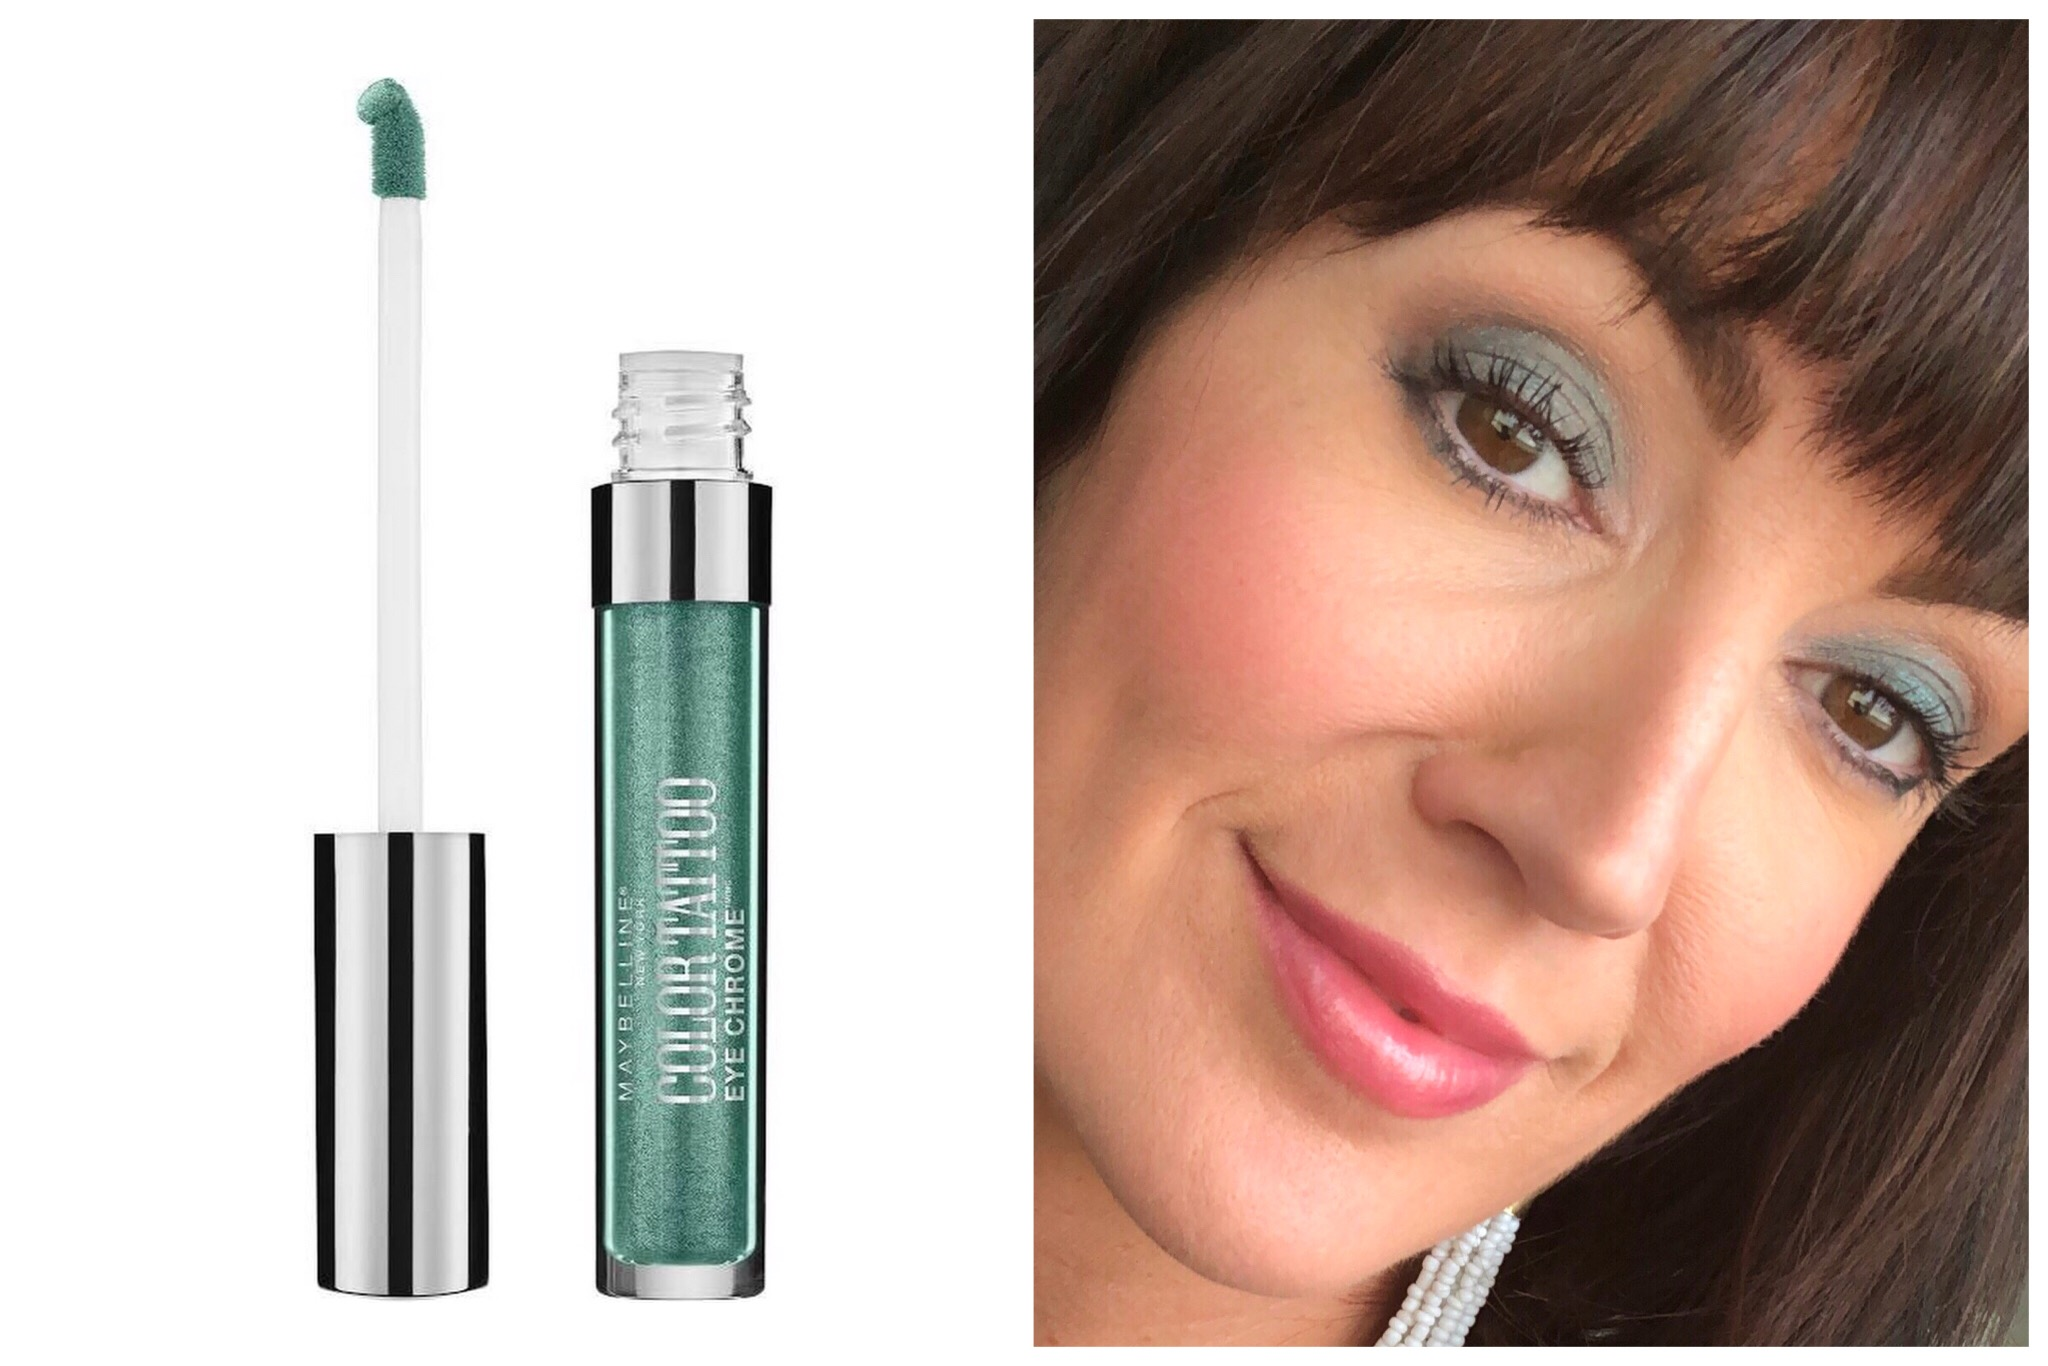 5 Truly Waterproof Makeup Products You Won't Sweat Off This Summer